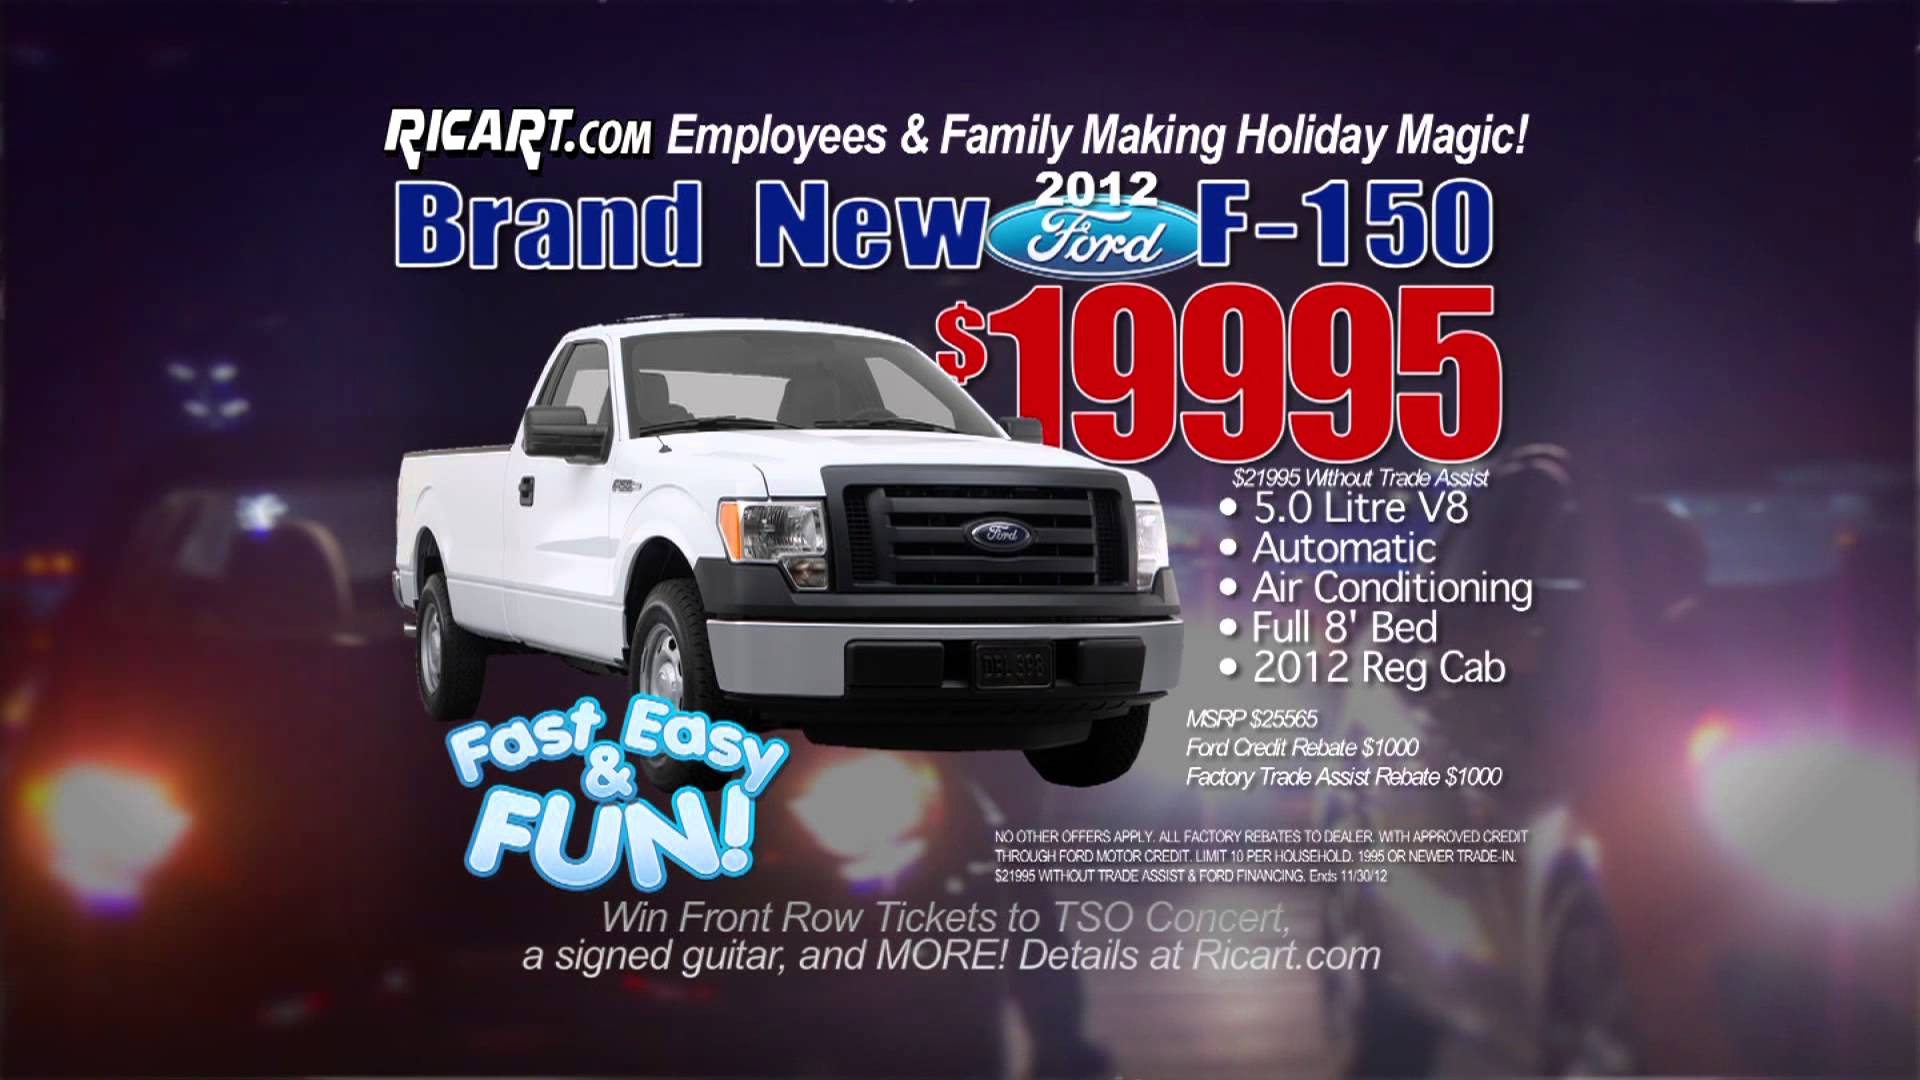 Ricart Used Cars Best Of Ricart New and Used ford Cars or Trucks In Columbus Ohio Youtube